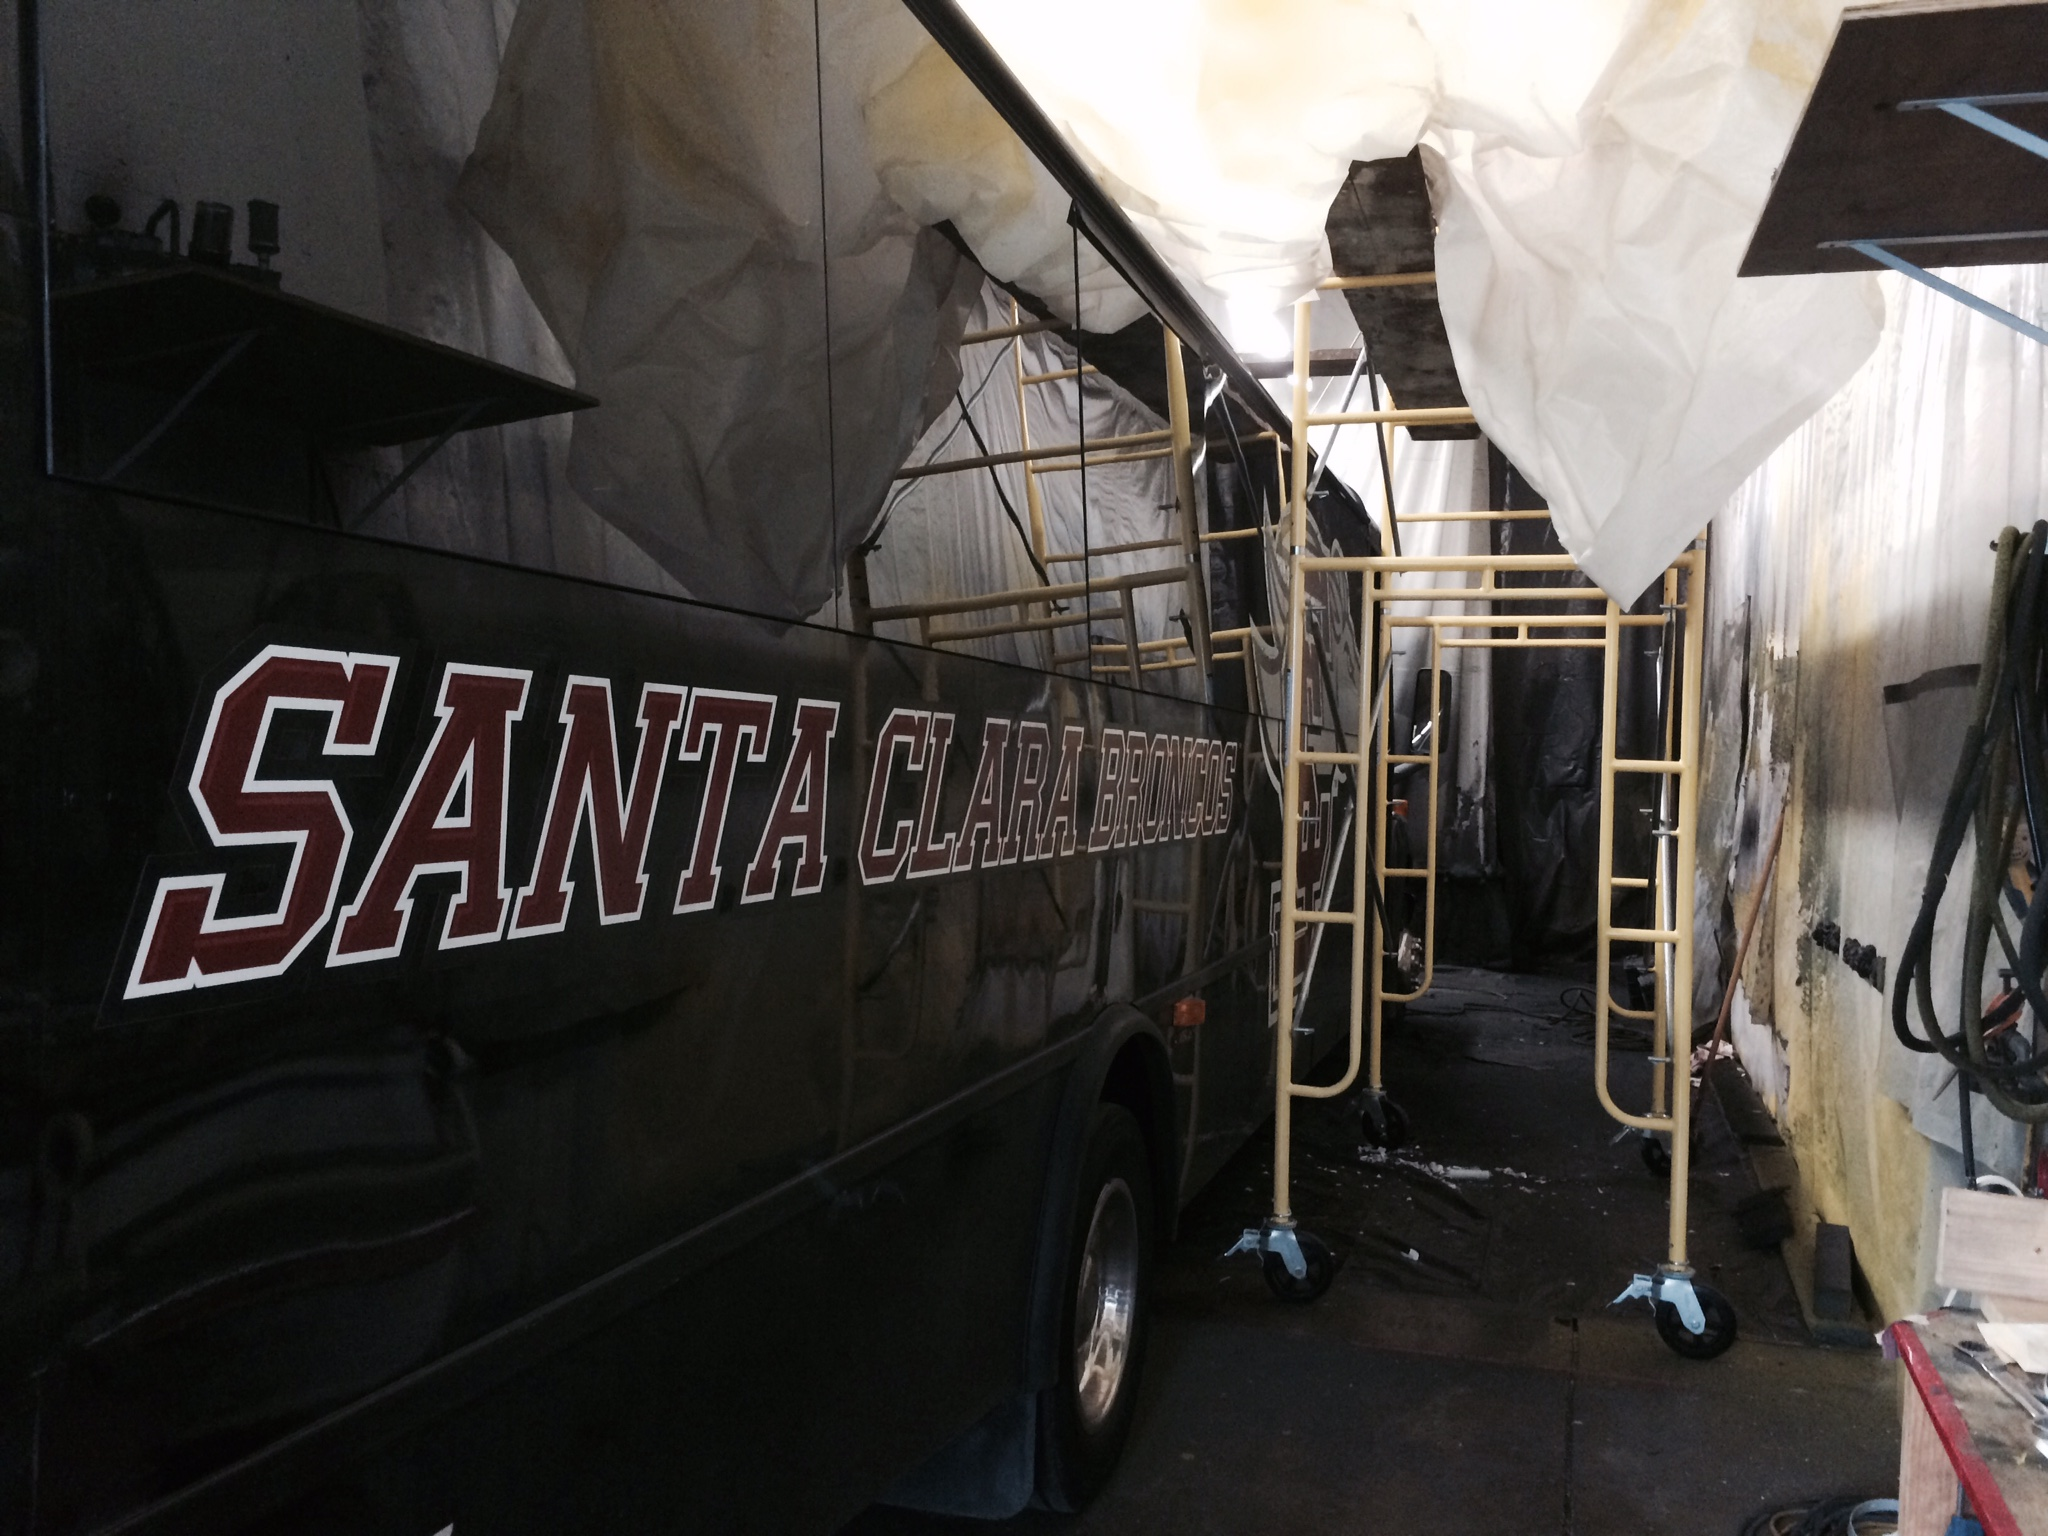 Santa Clara University Bus gets Polyurea 'd